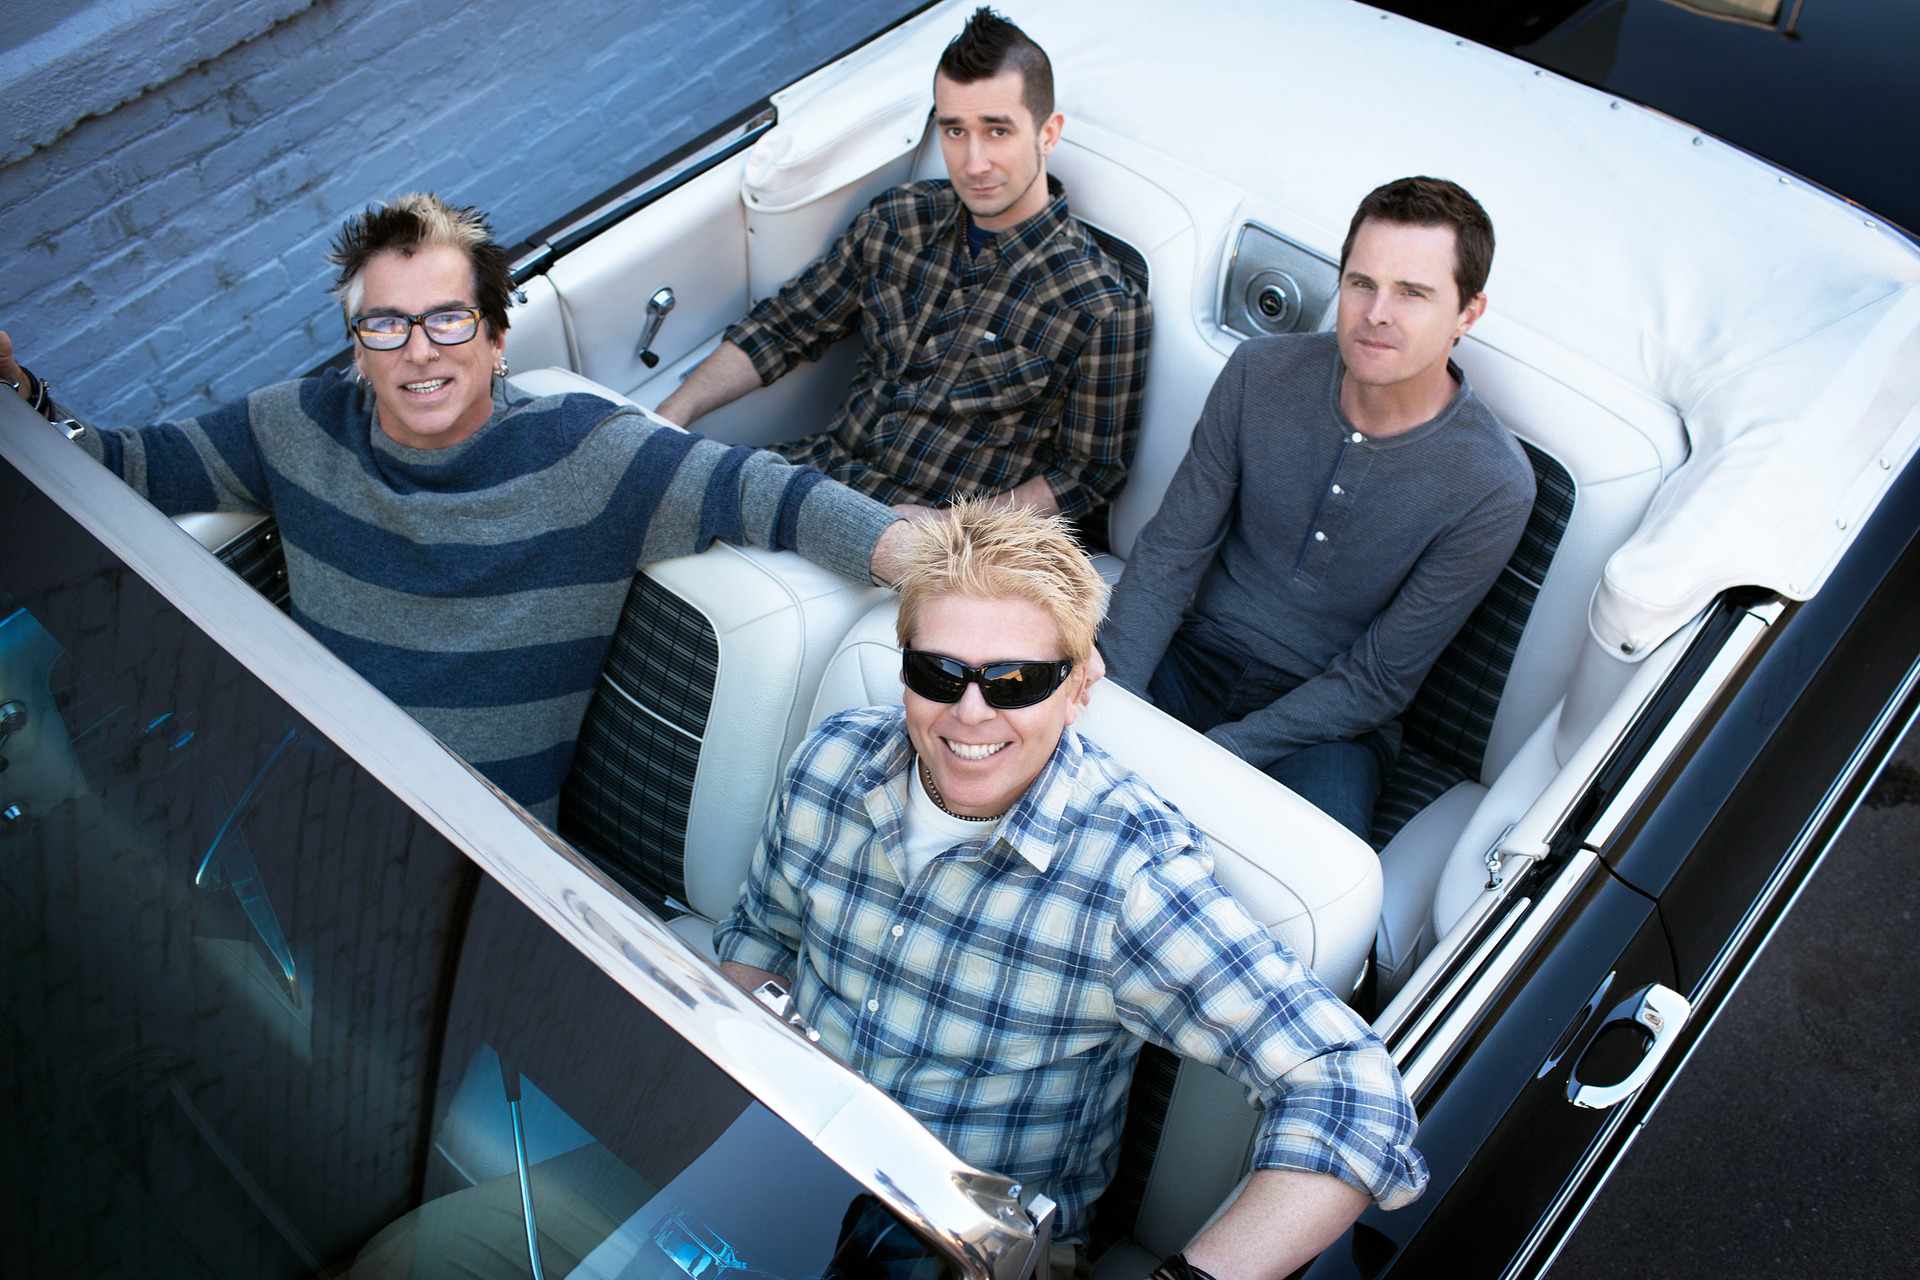 Rock bands The Offspring, Sum 41 coming to New Zealand